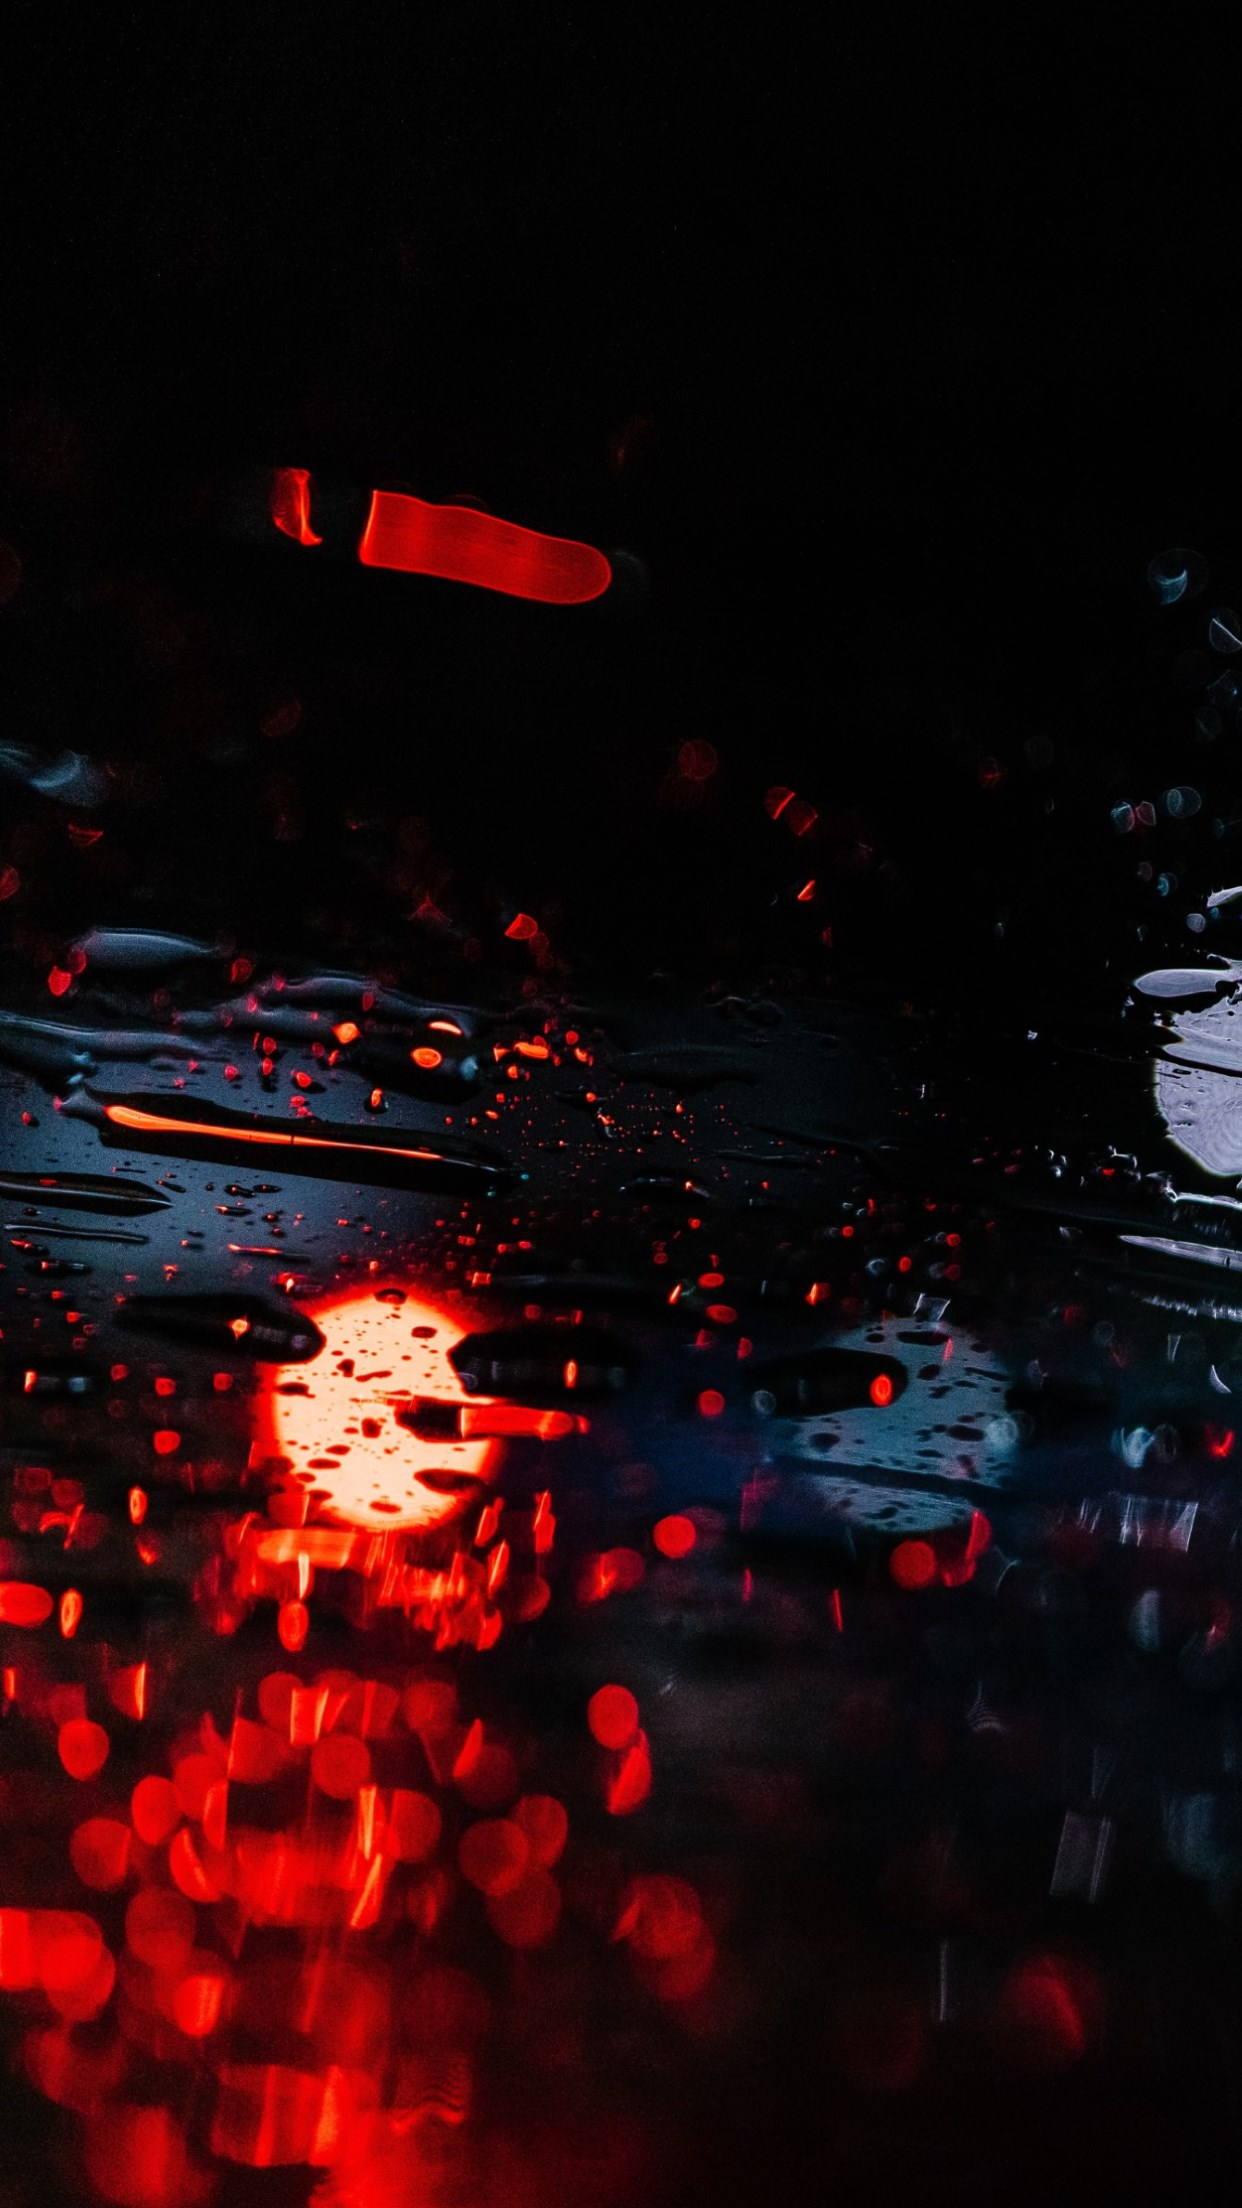 Rainy nights wallpaper 1242x2208